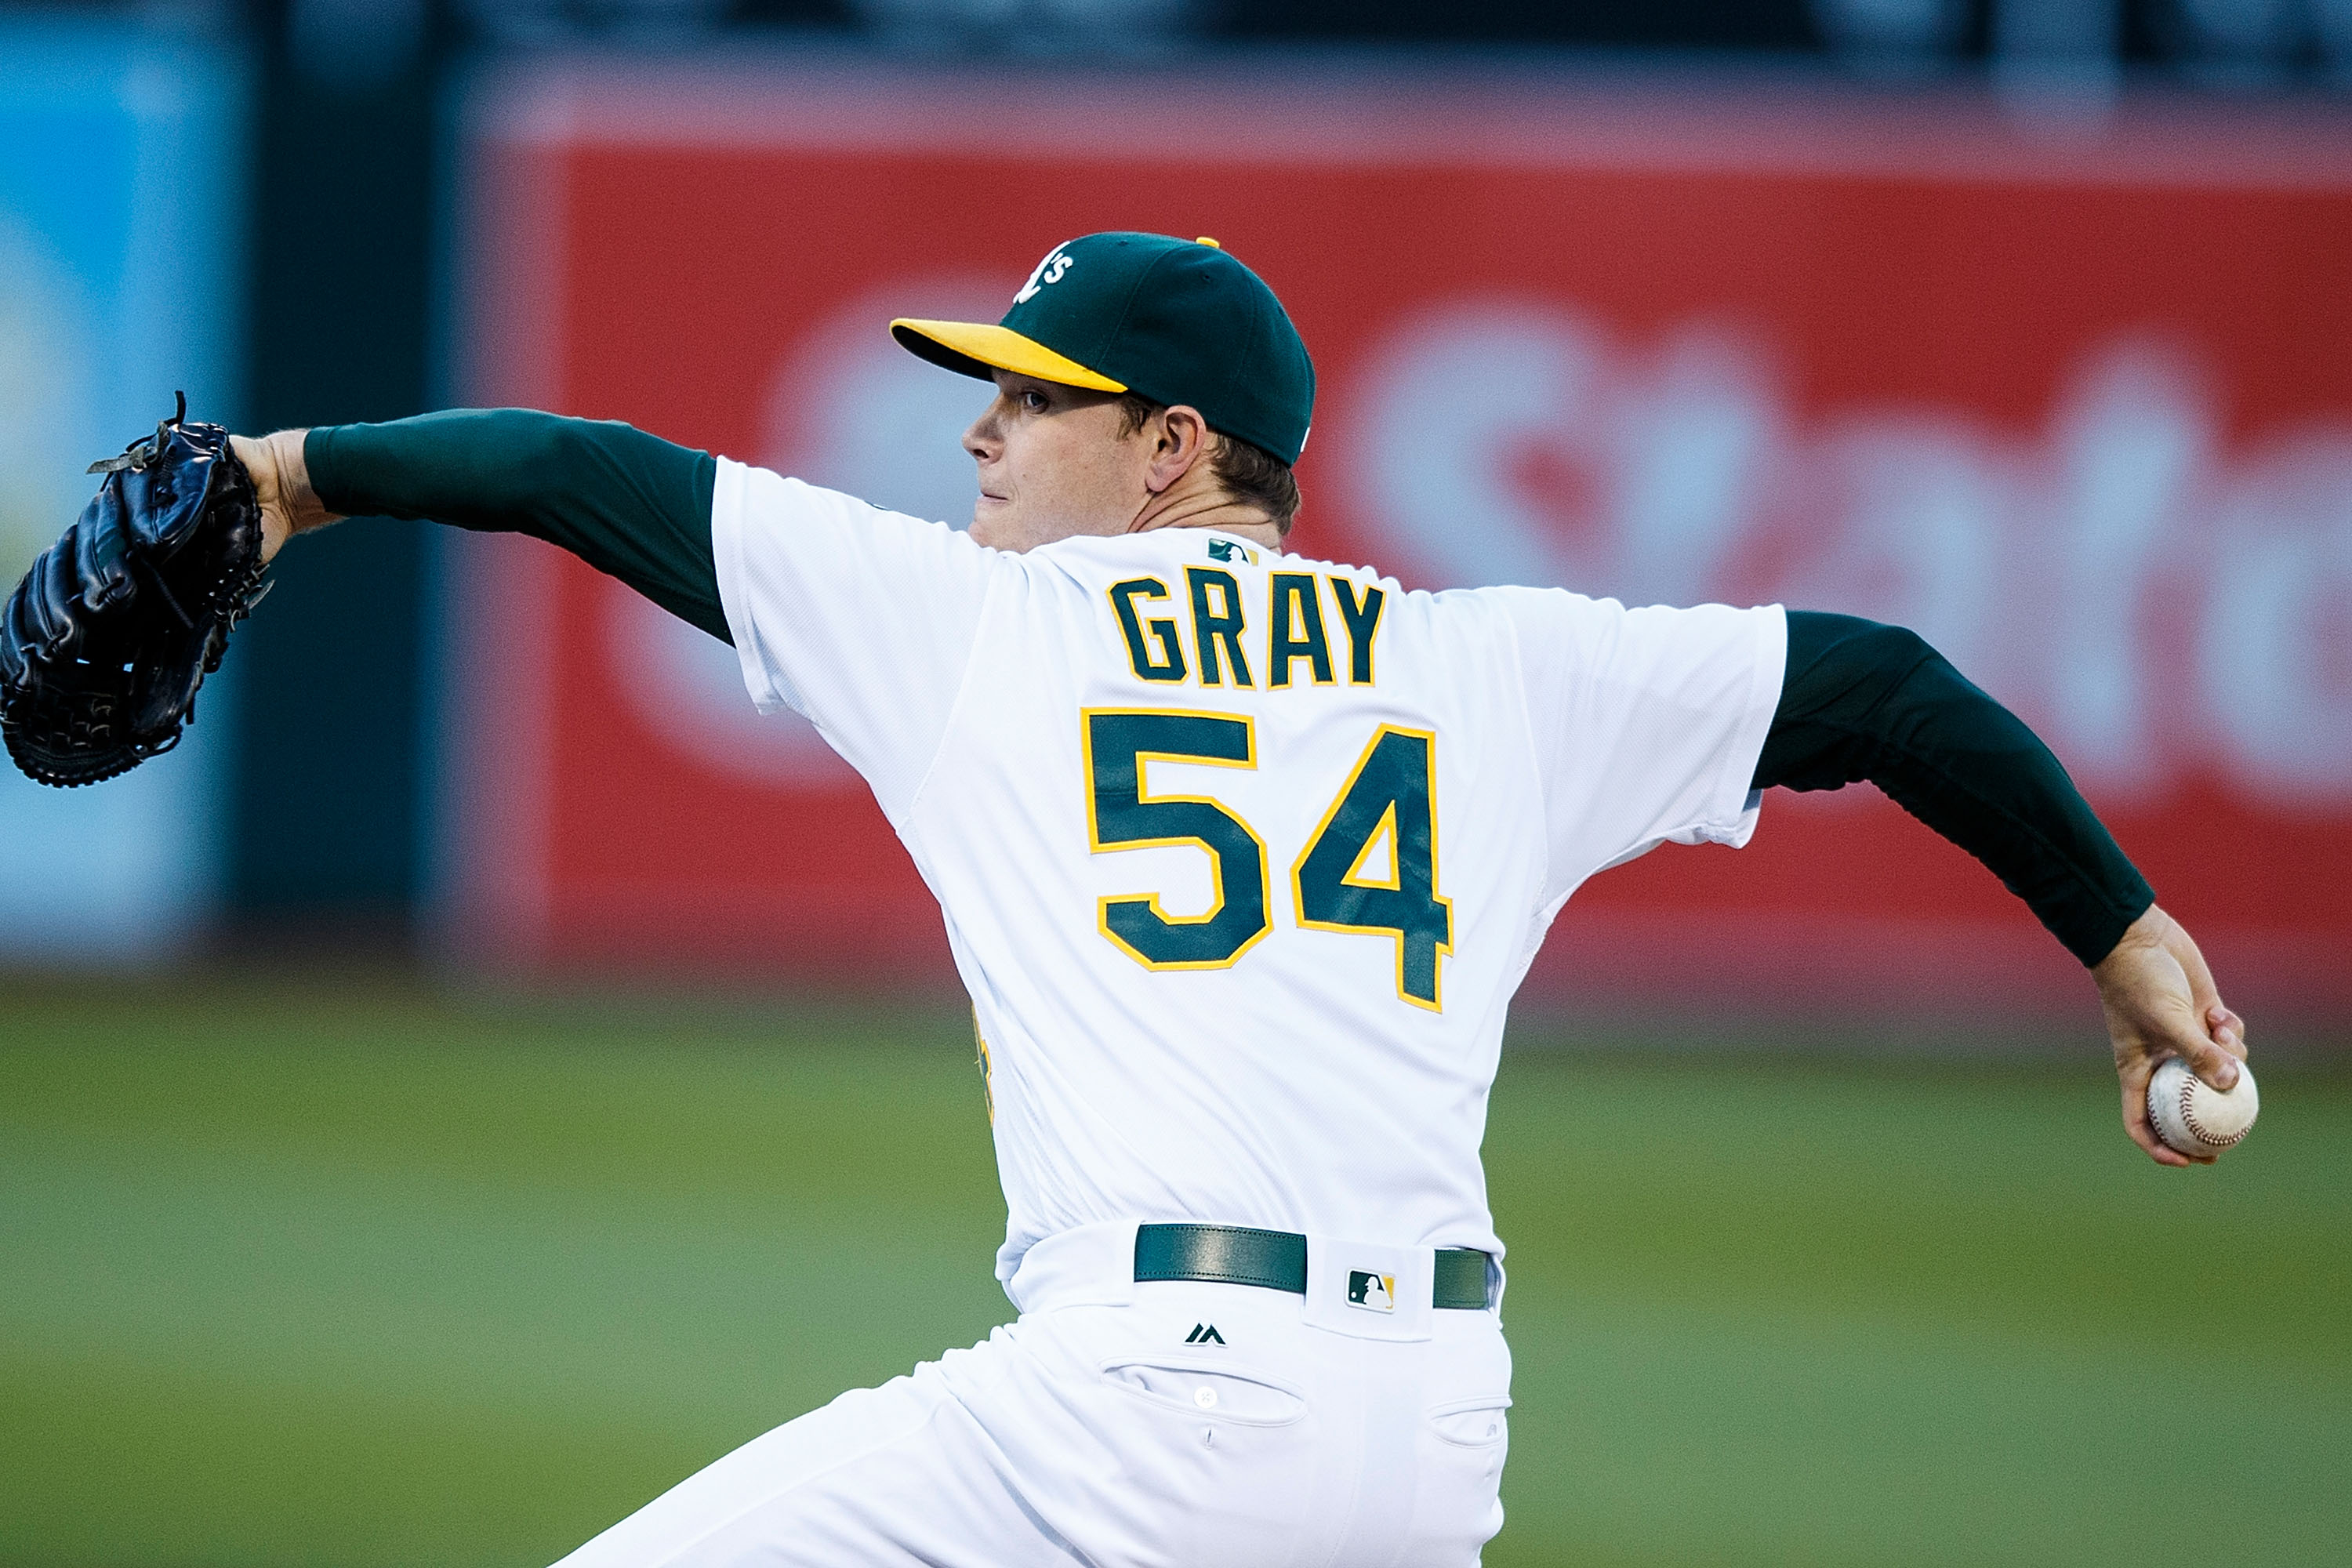 Pictured: Artist's rendering of Bukauskas in A's jersey.